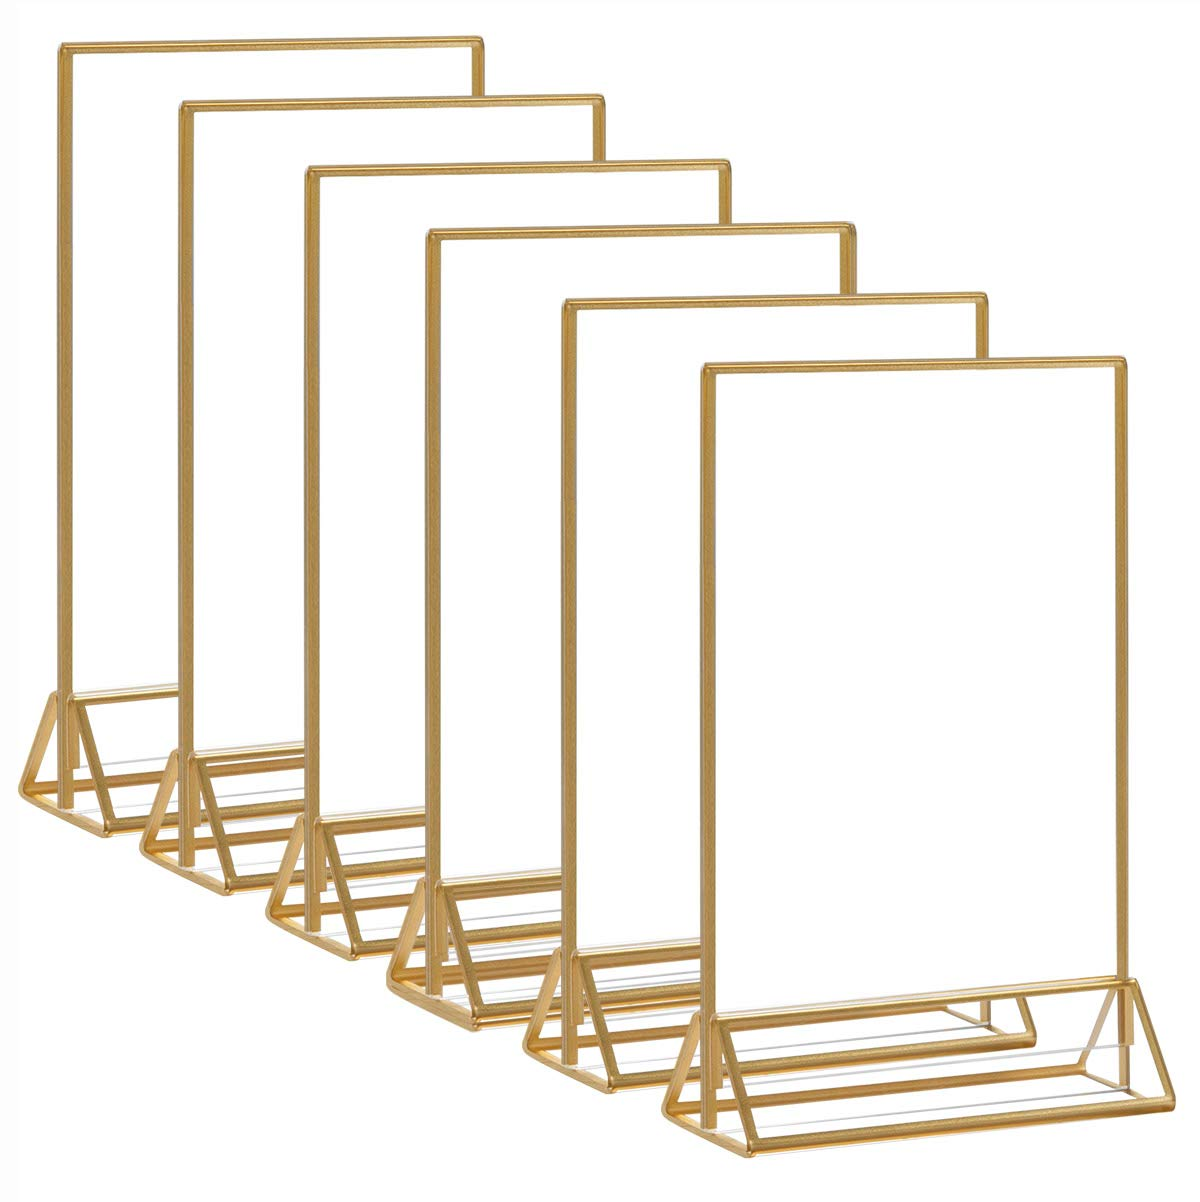 HIIMIEI Acrylic Gold Frames Sign Holders 8.5x11, Double Sided Table Menu Display Stand, Gold Acrylic Wedding Table Numbers Holder(6 Pack)